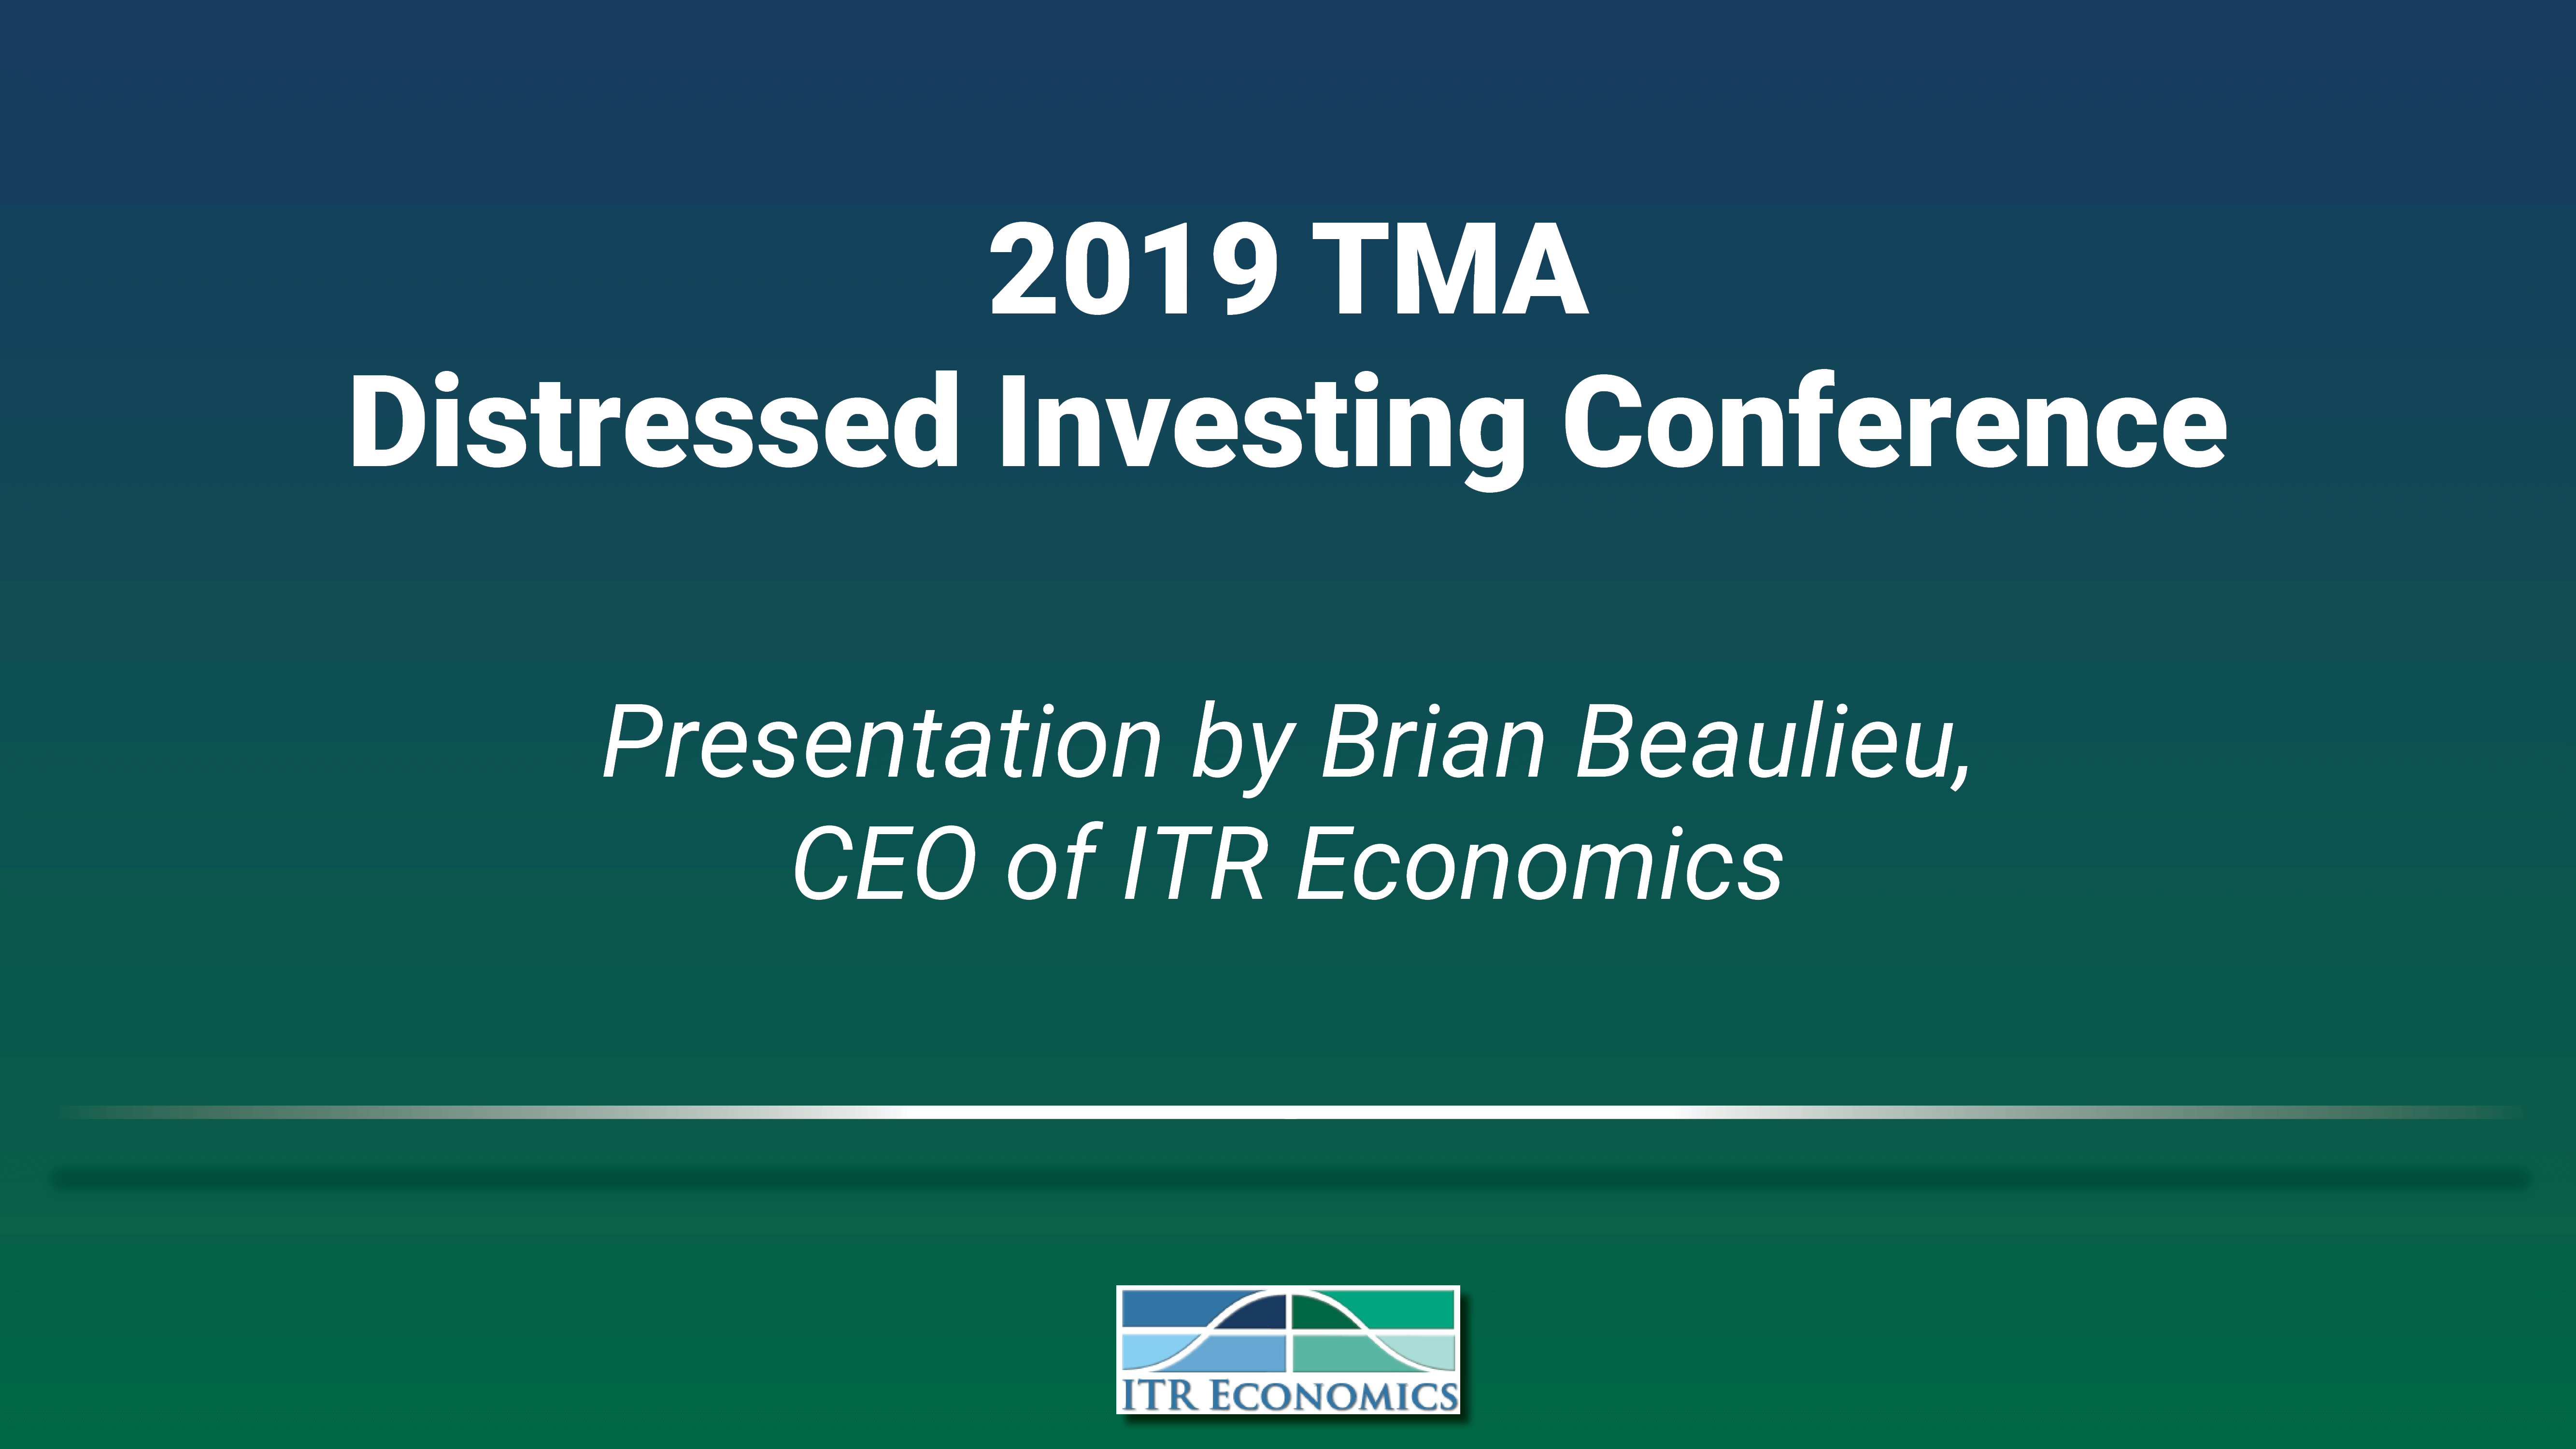 2019 TMA Distressed Investing Conference with Brian Beaulieu